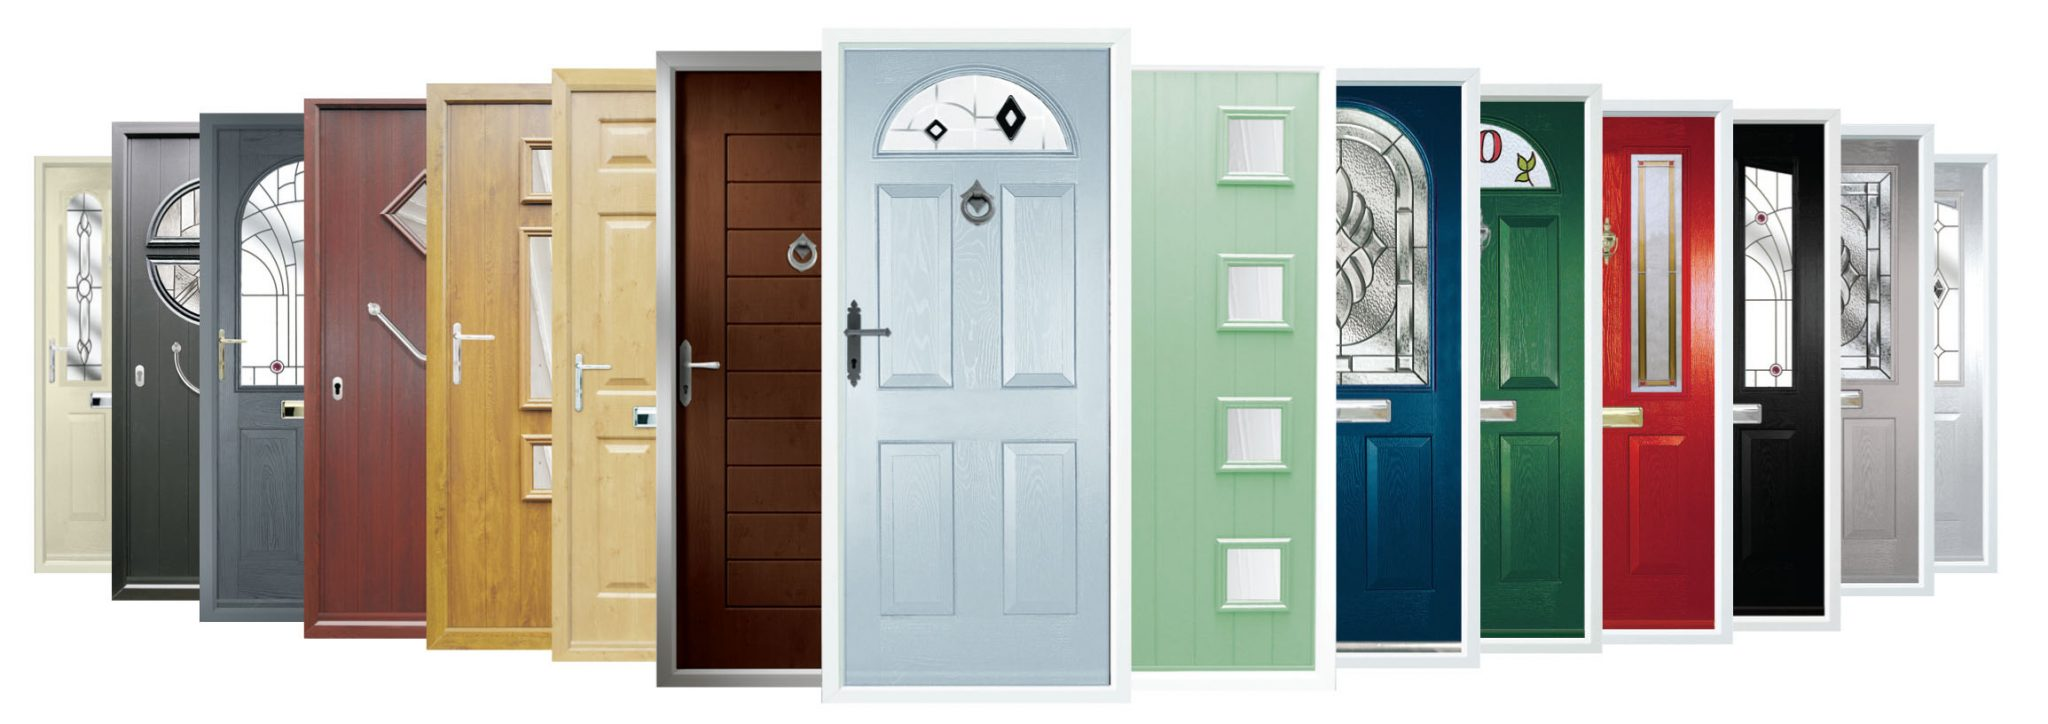 selection of doors